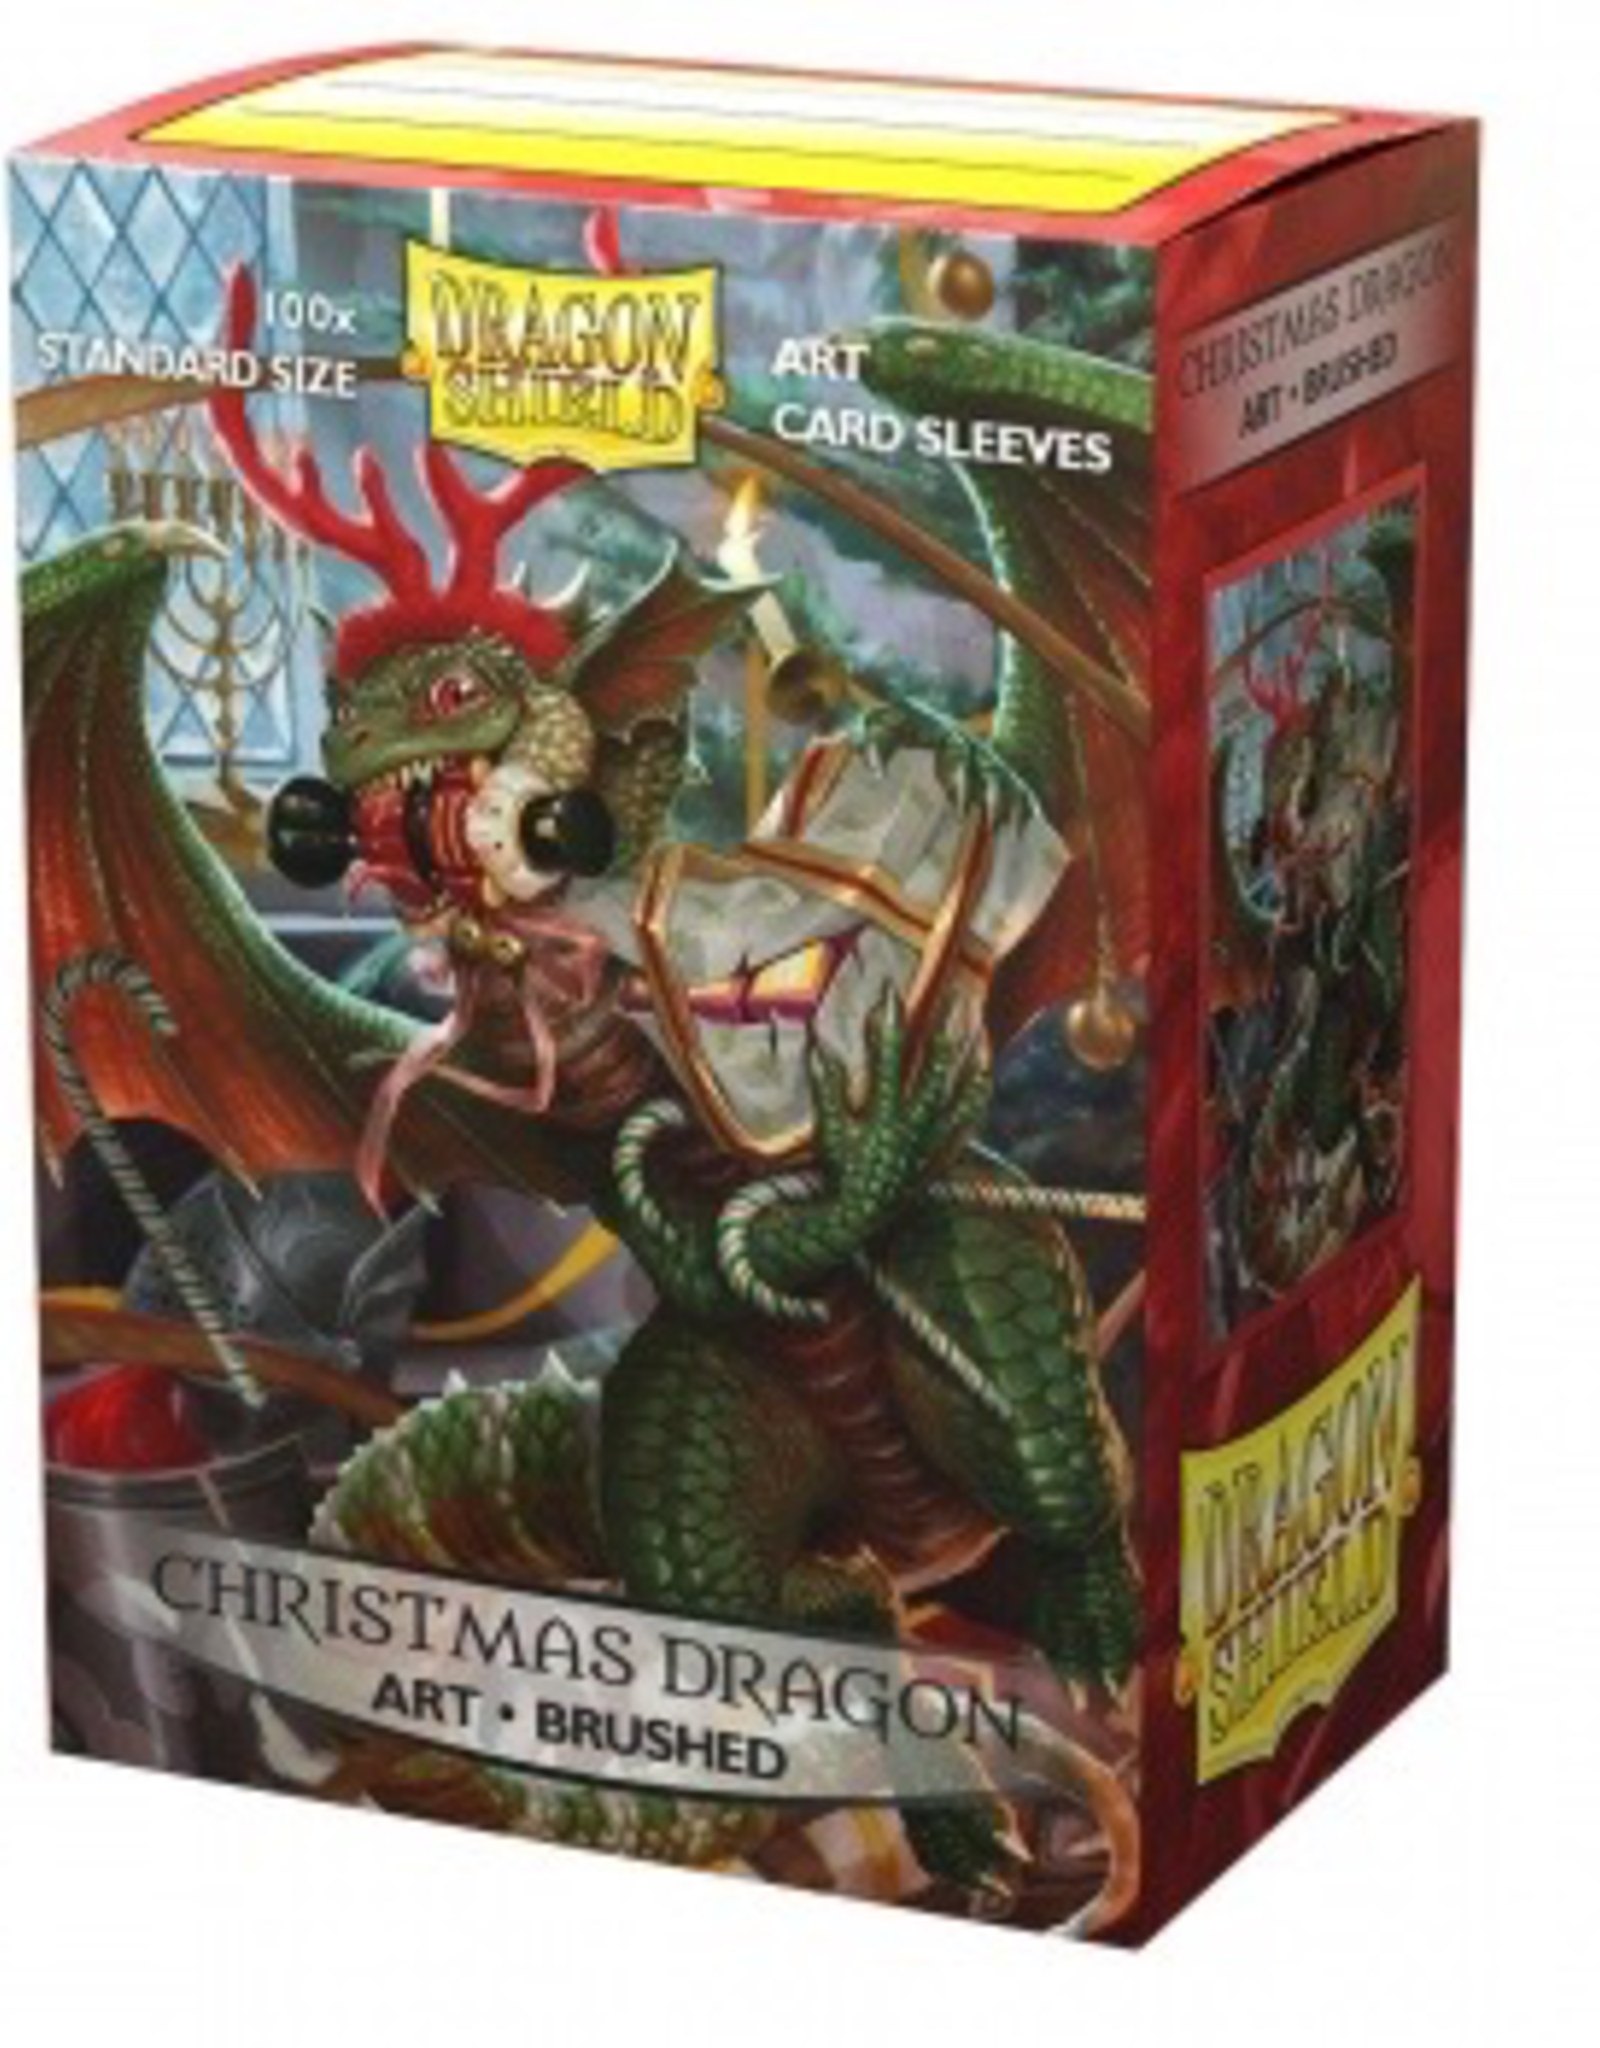 DS - Standard Sleeves Dragon Shield Brushed Art Sleeves - Christmas Dragon 2020 (100 Sleeves)